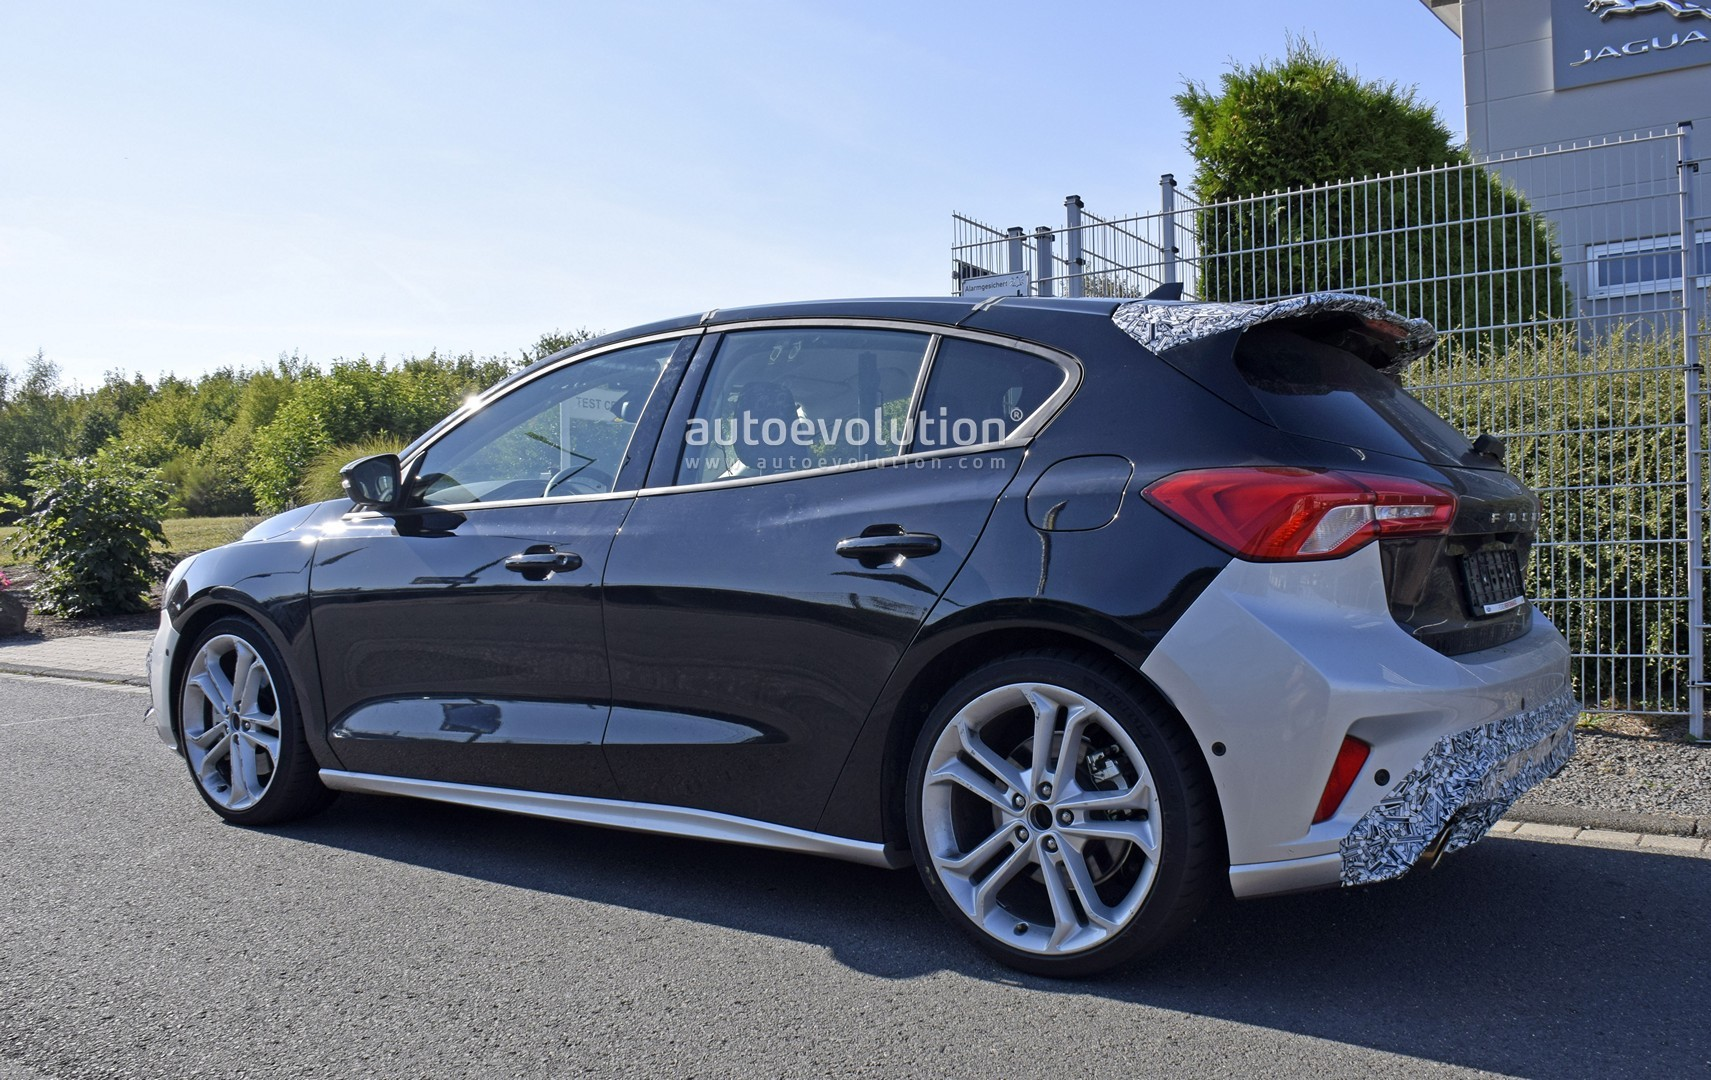 2020-ford-​focus-st-r​eveals-int​erior-in-l​atest-spys​hots_5